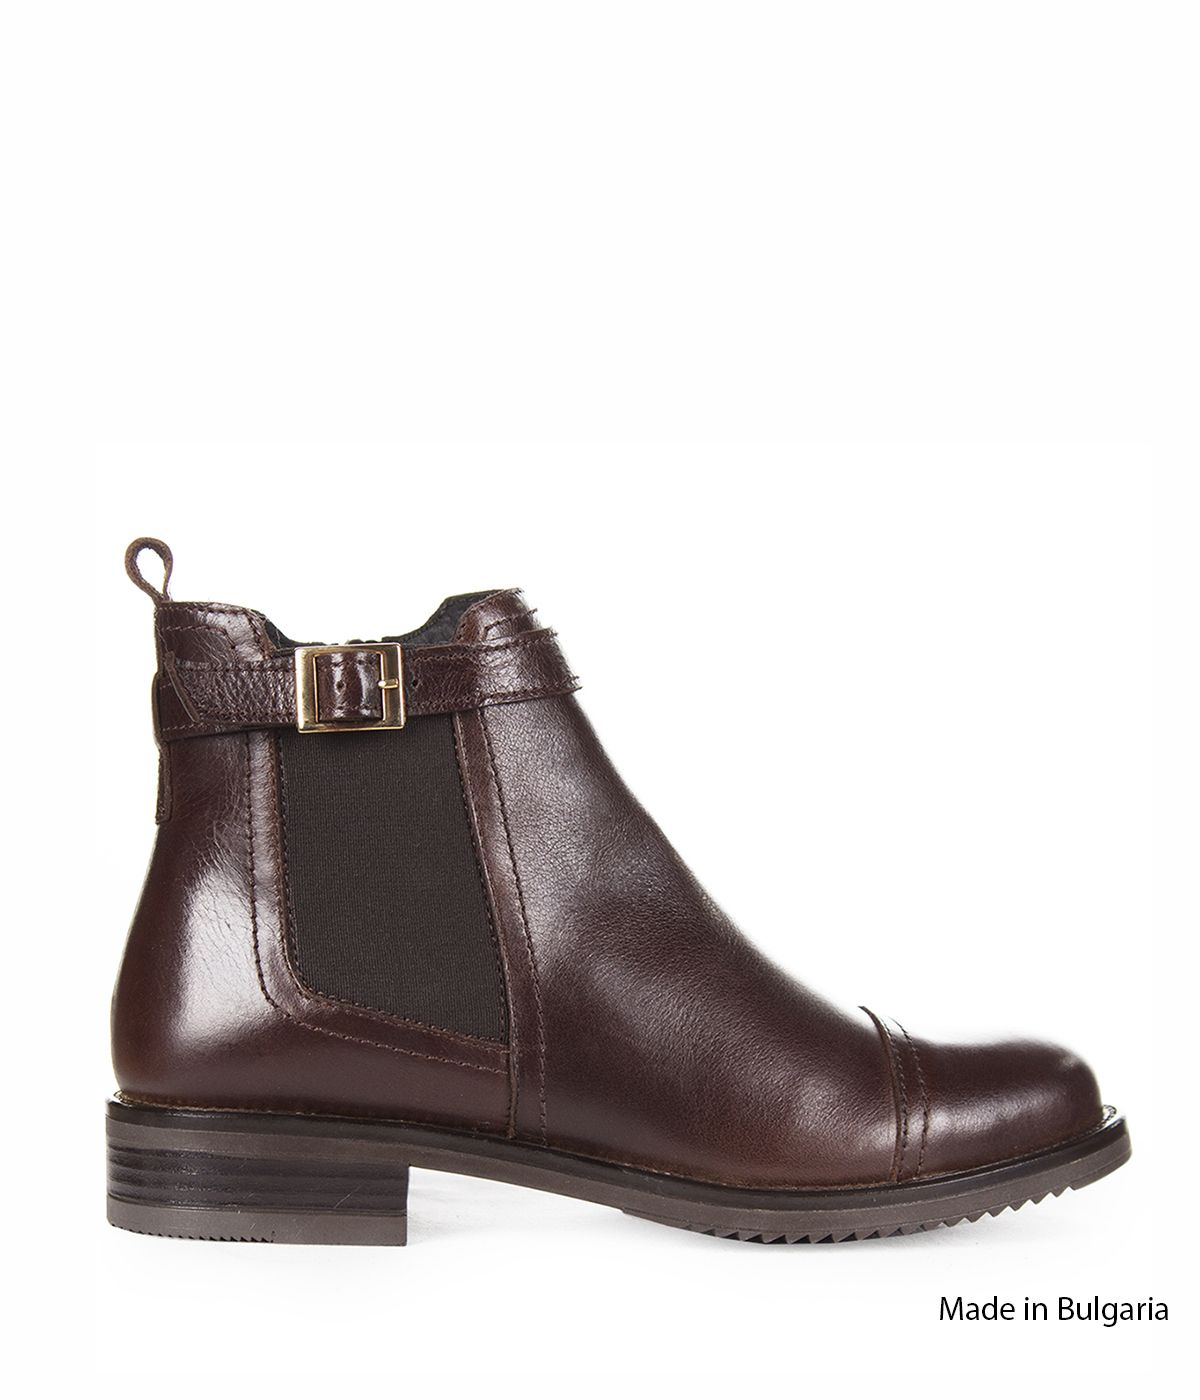 BROWN LEATHER ANKLE BOOTS 0